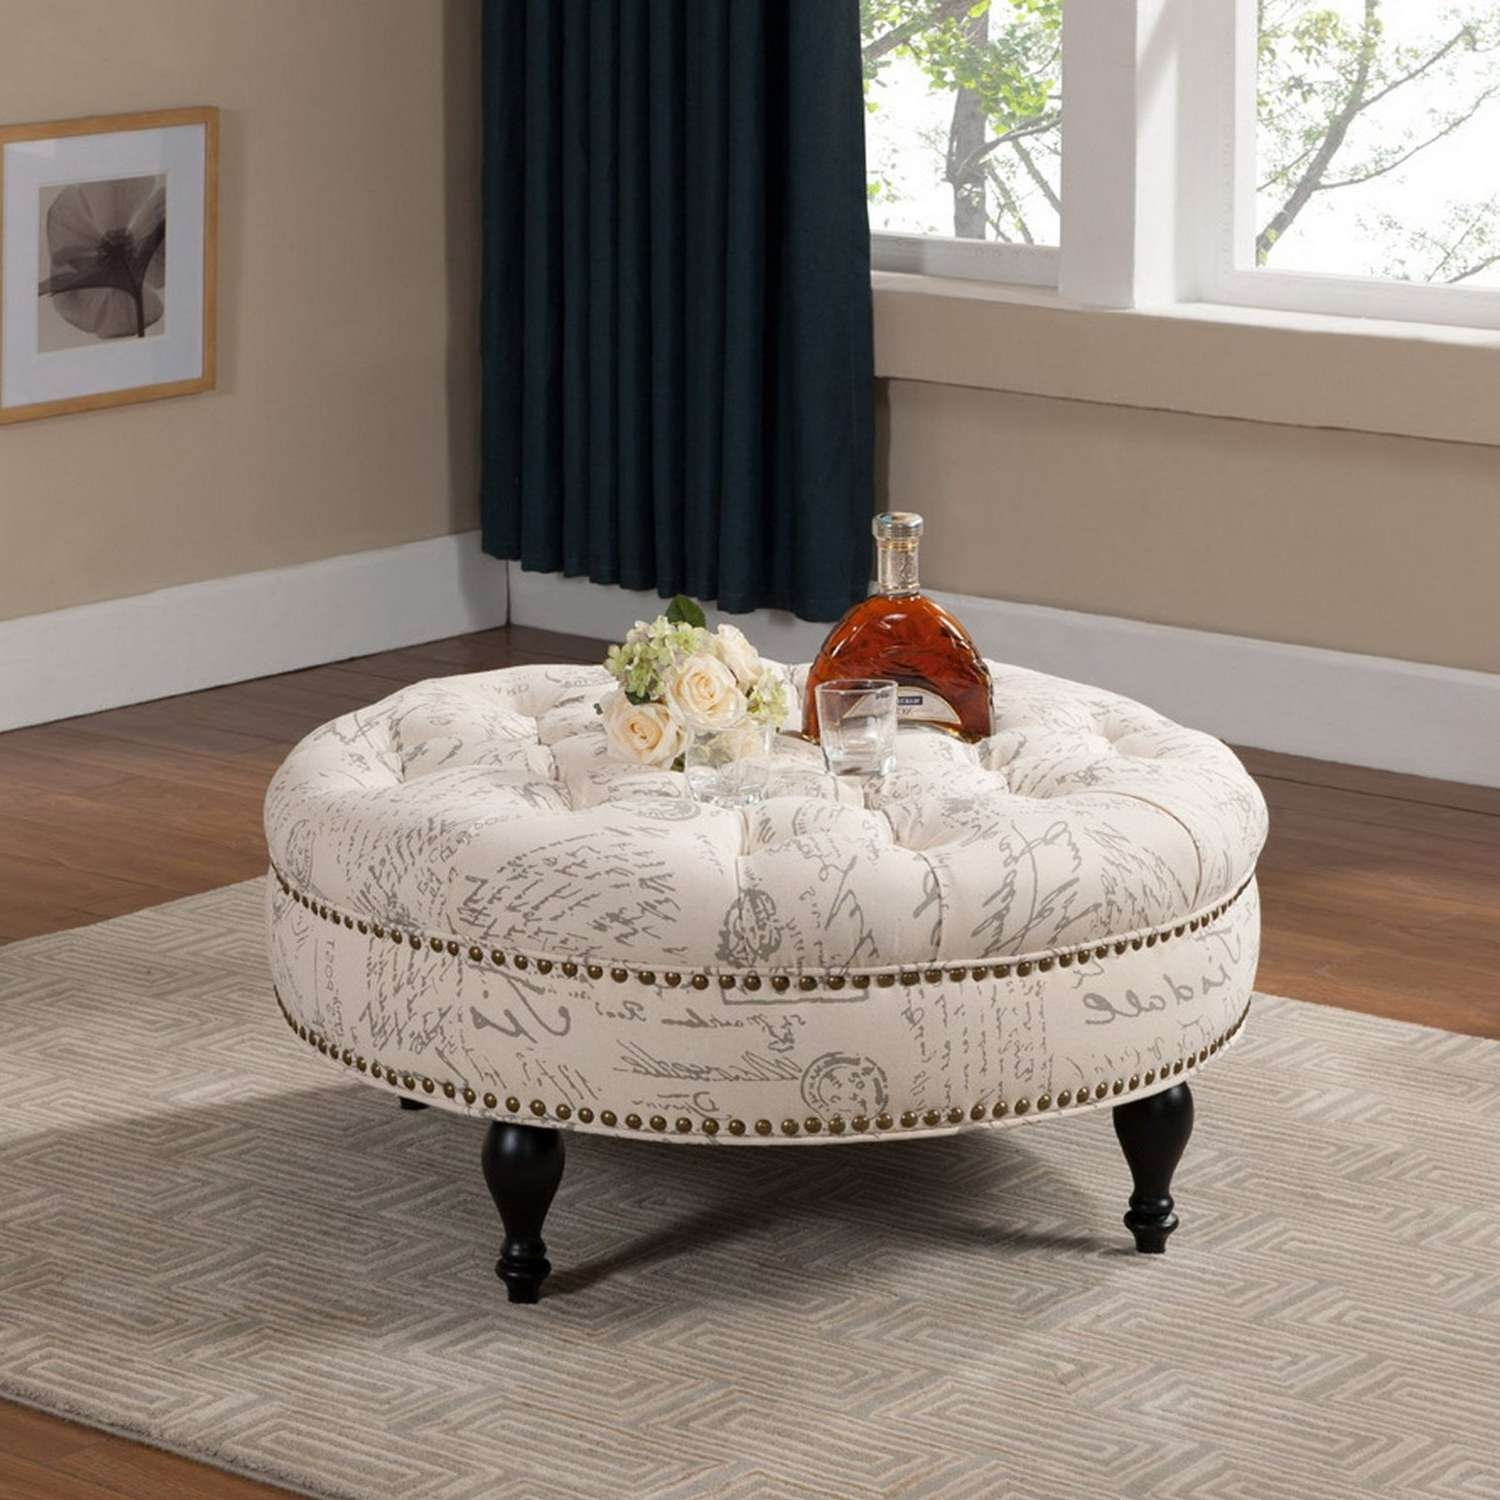 Round Fabric Ottoman Coffee Table – Beautiful Living Room With With Regard To Most Popular Fabric Coffee Tables (View 9 of 20)